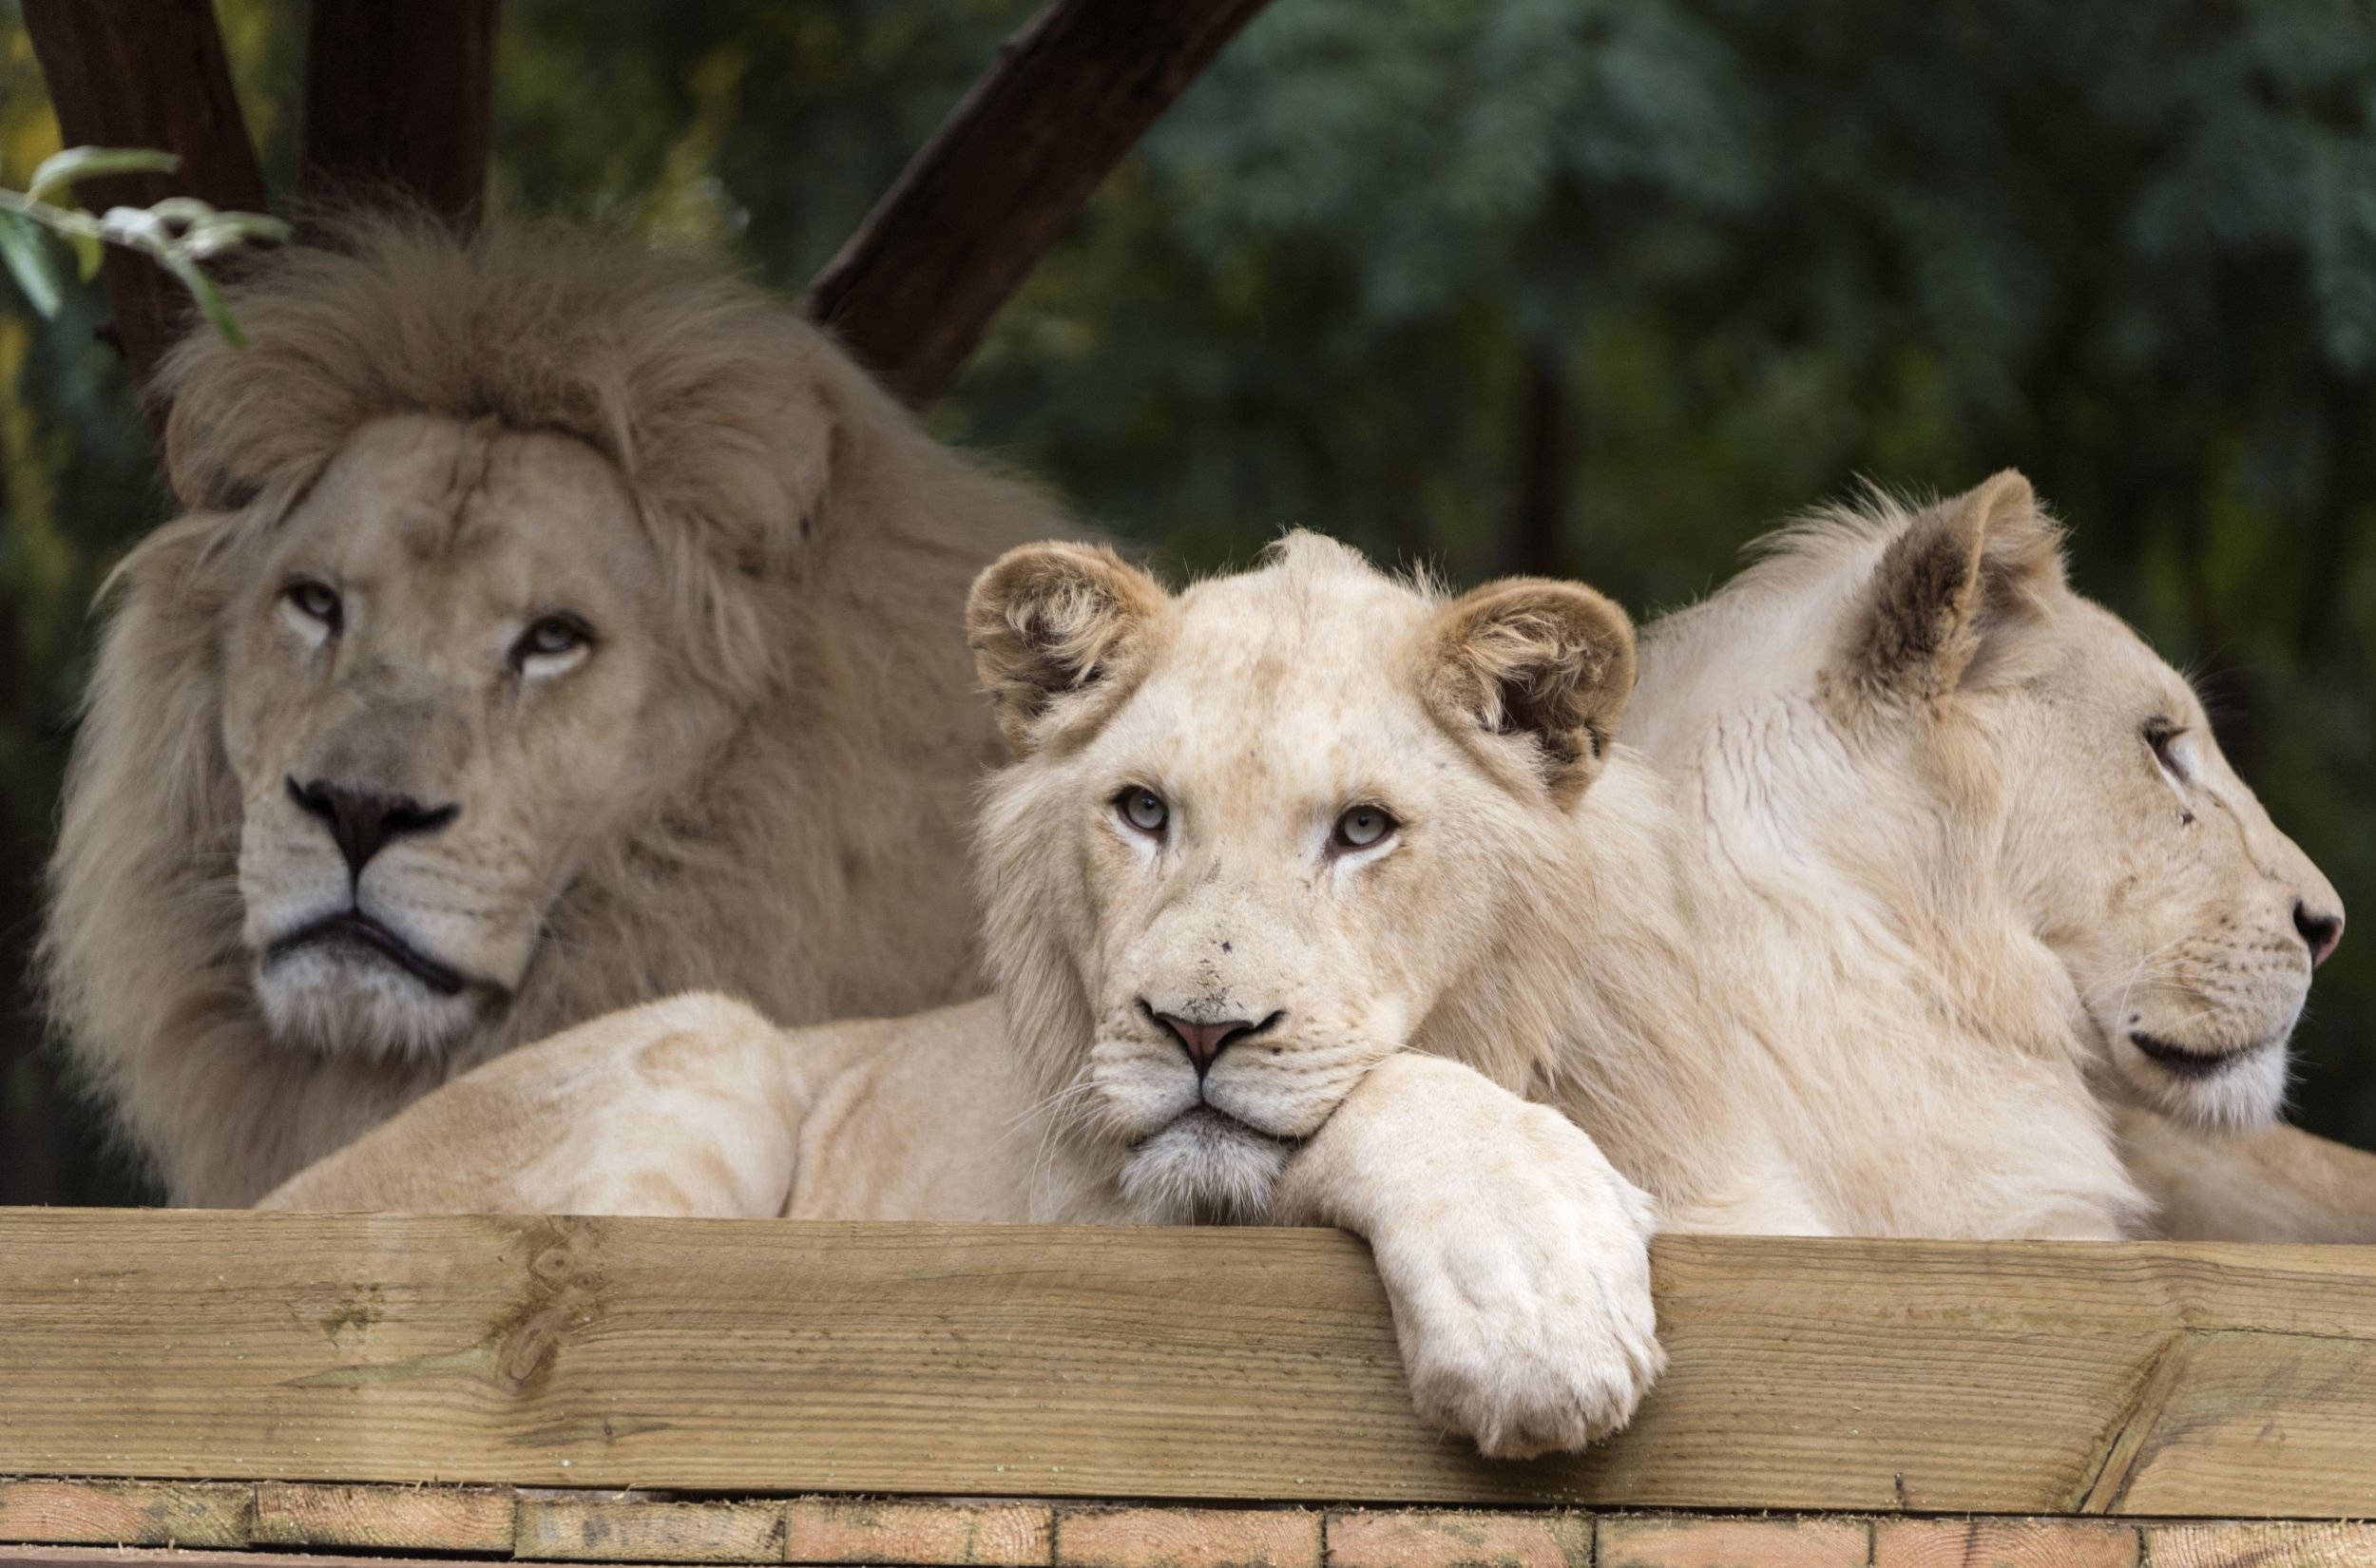 Rare White Lion, Mufasa, At Risk of Being Killed After